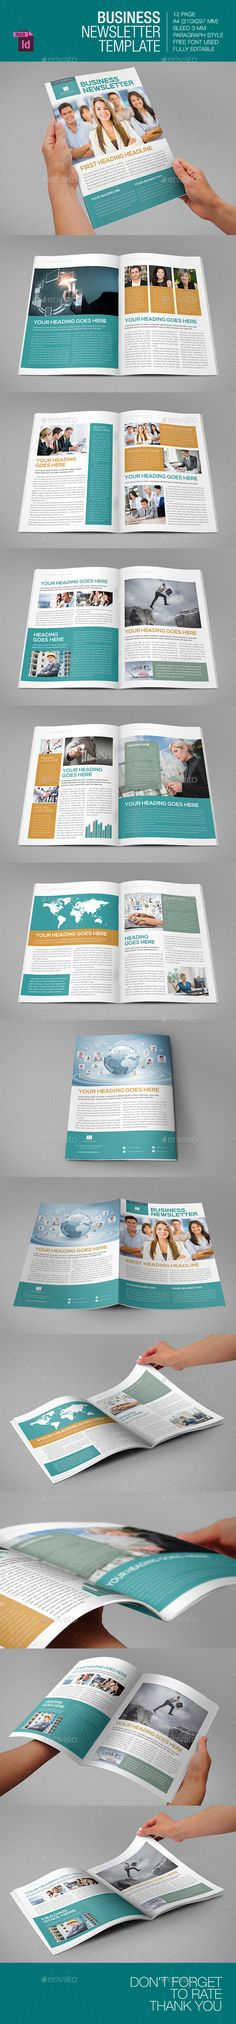 Business Newsletter (8 pages) Print templates, Newsletter - business newsletter